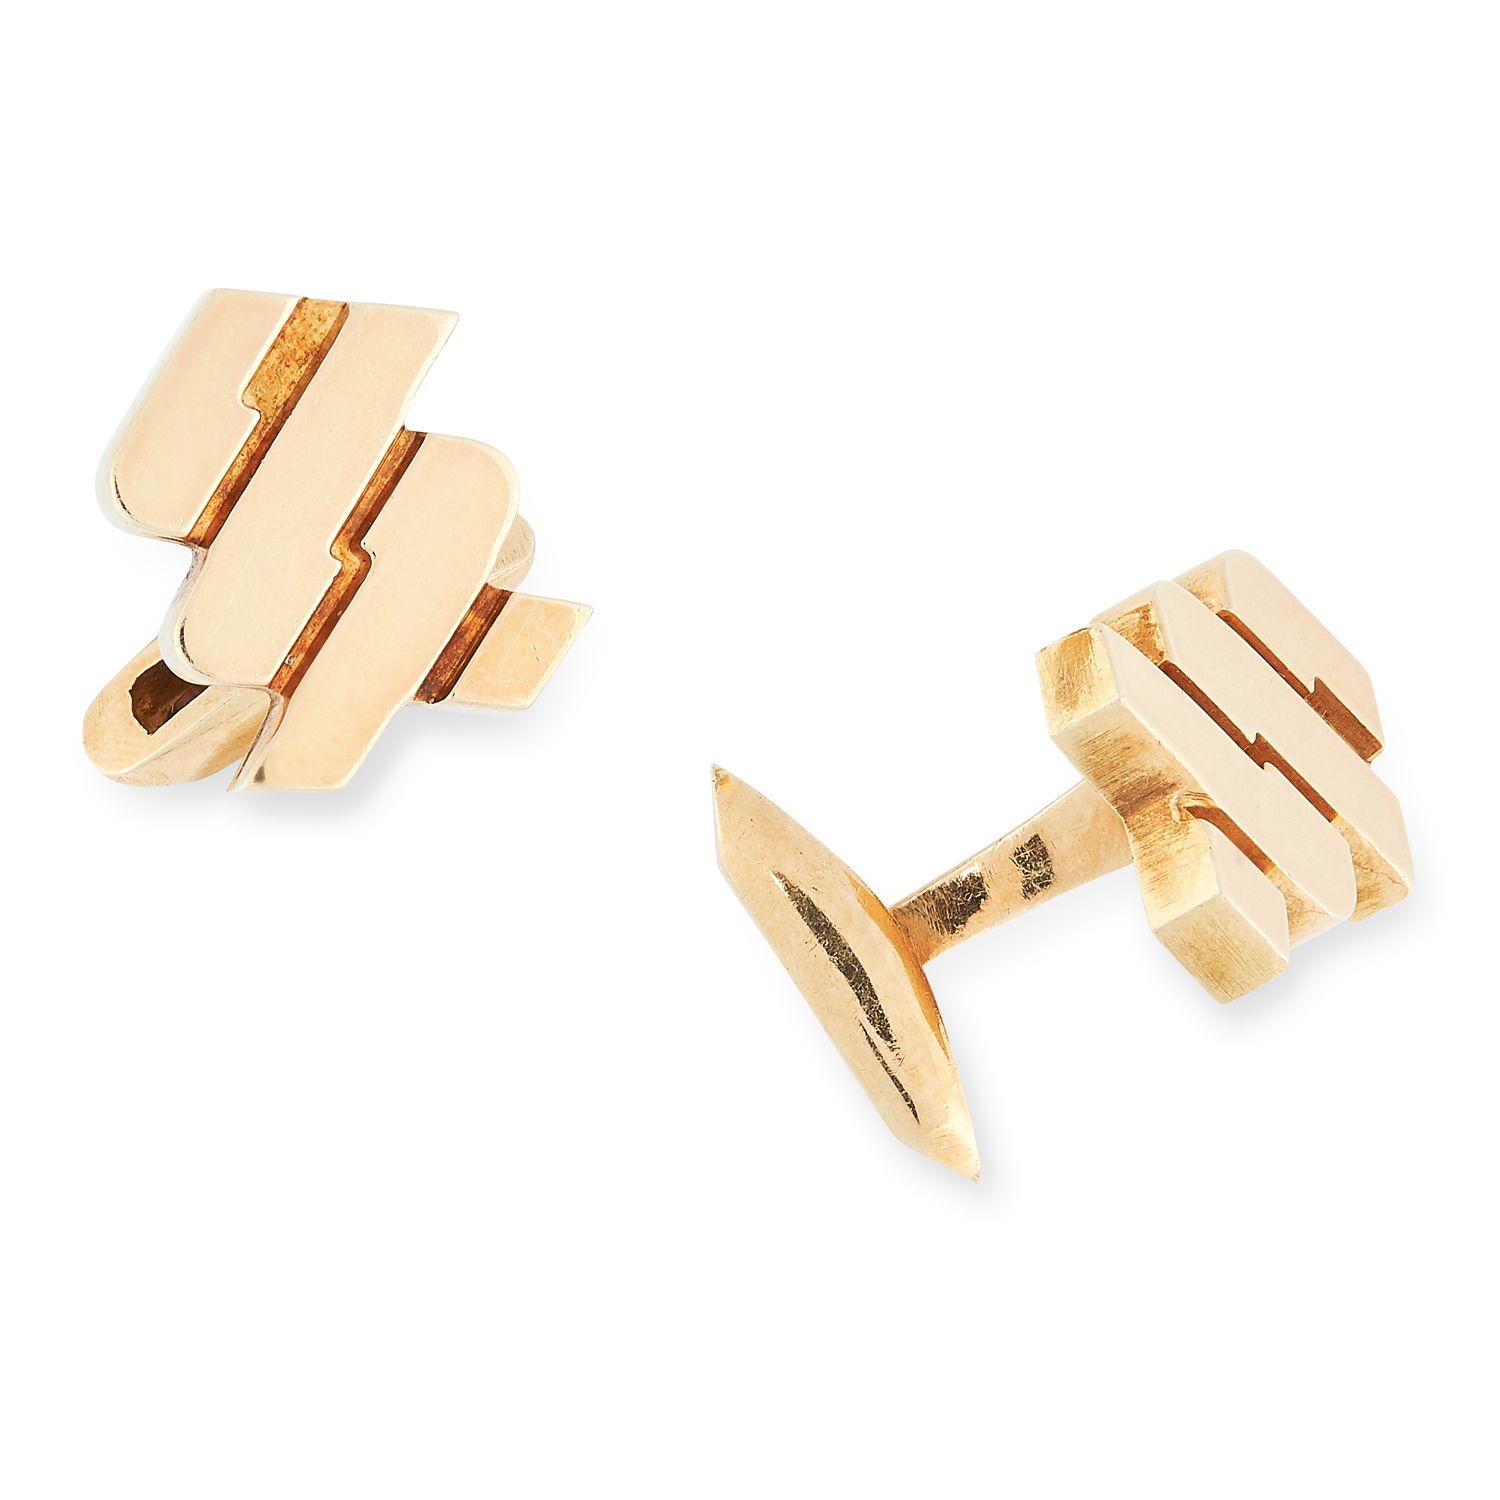 A PAIR OF CUFFLINKS, 1977 in 18cr yellow gold, in twisted design, signed AC.Co, 1.9cm, 25.4g.